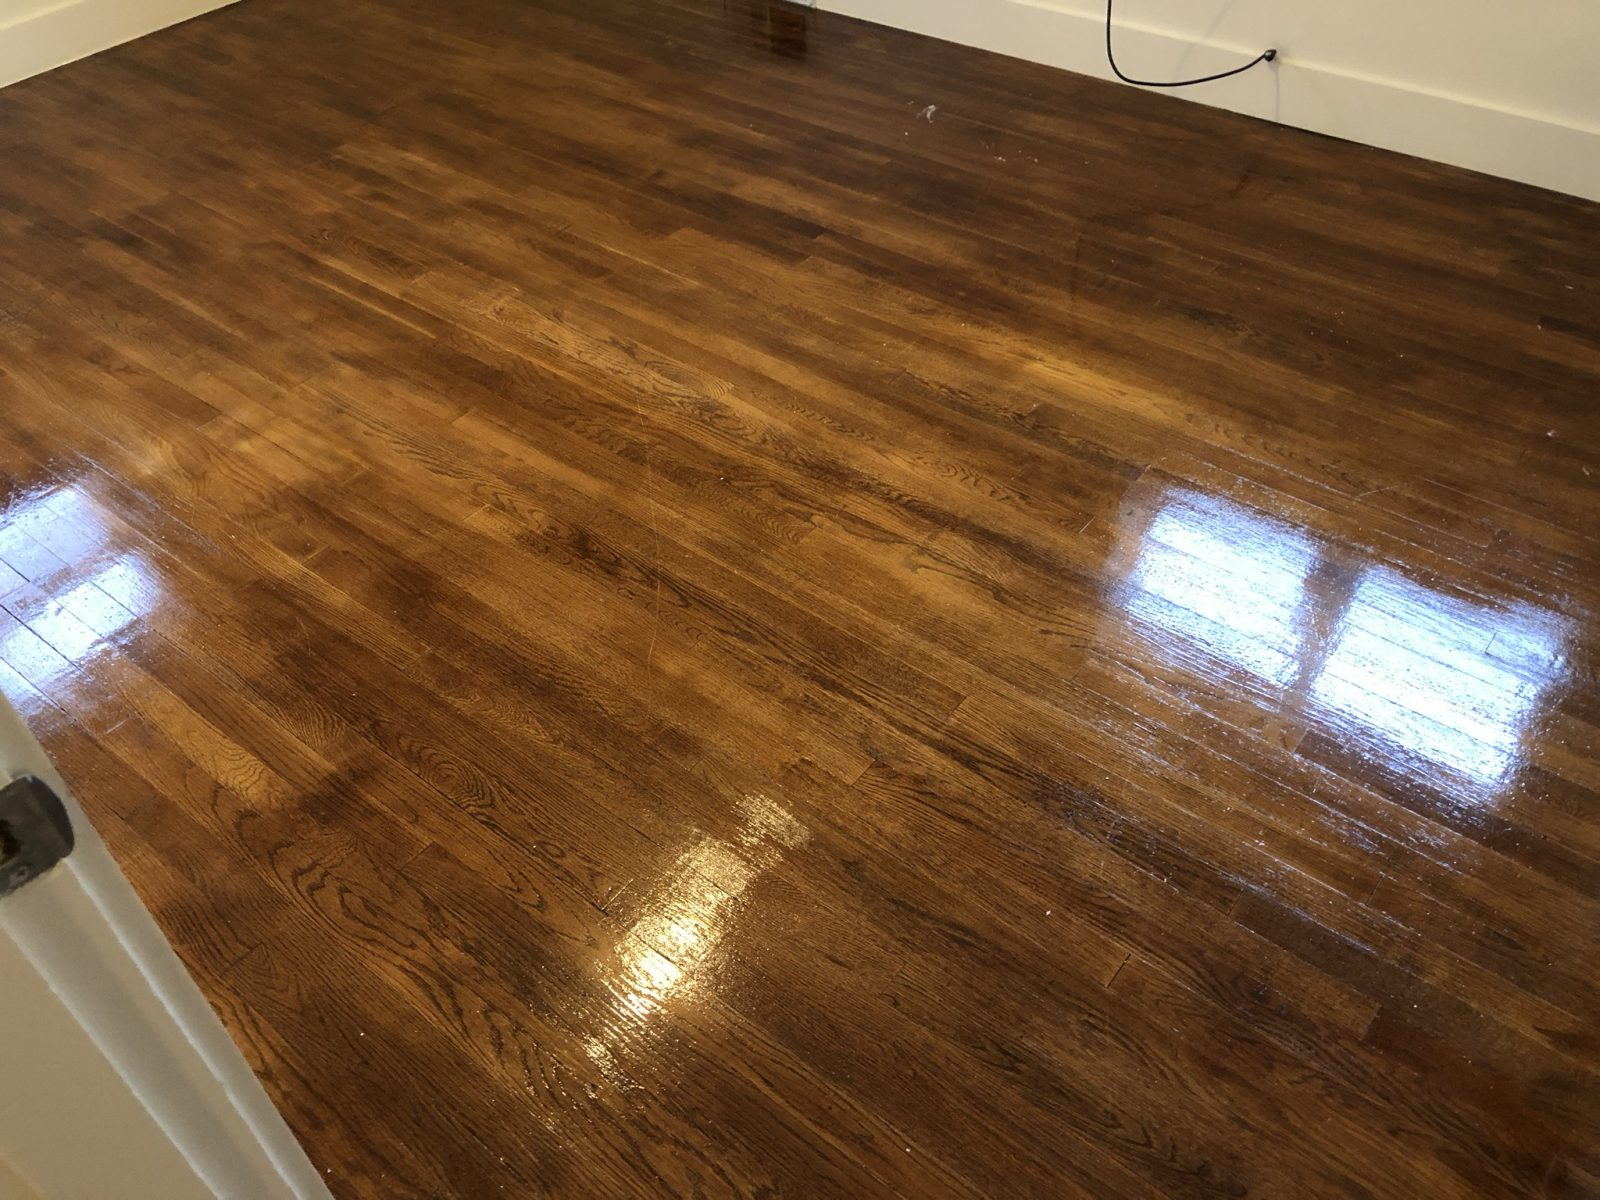 Professional Hardwood Floor Cleaning Wyoming Ohio by Howards Cleaning Service